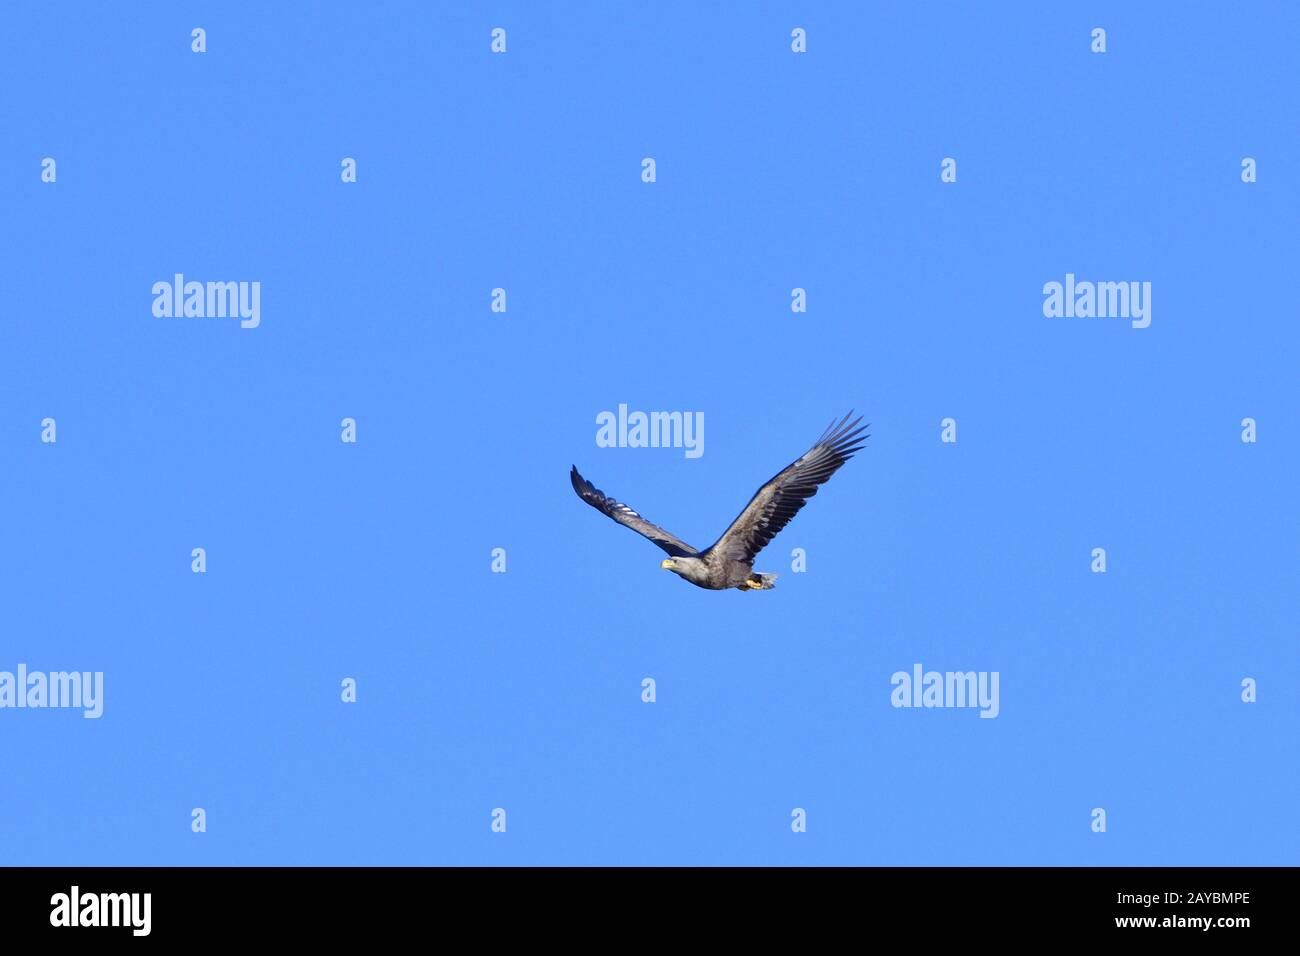 Seeadler Stock Photo